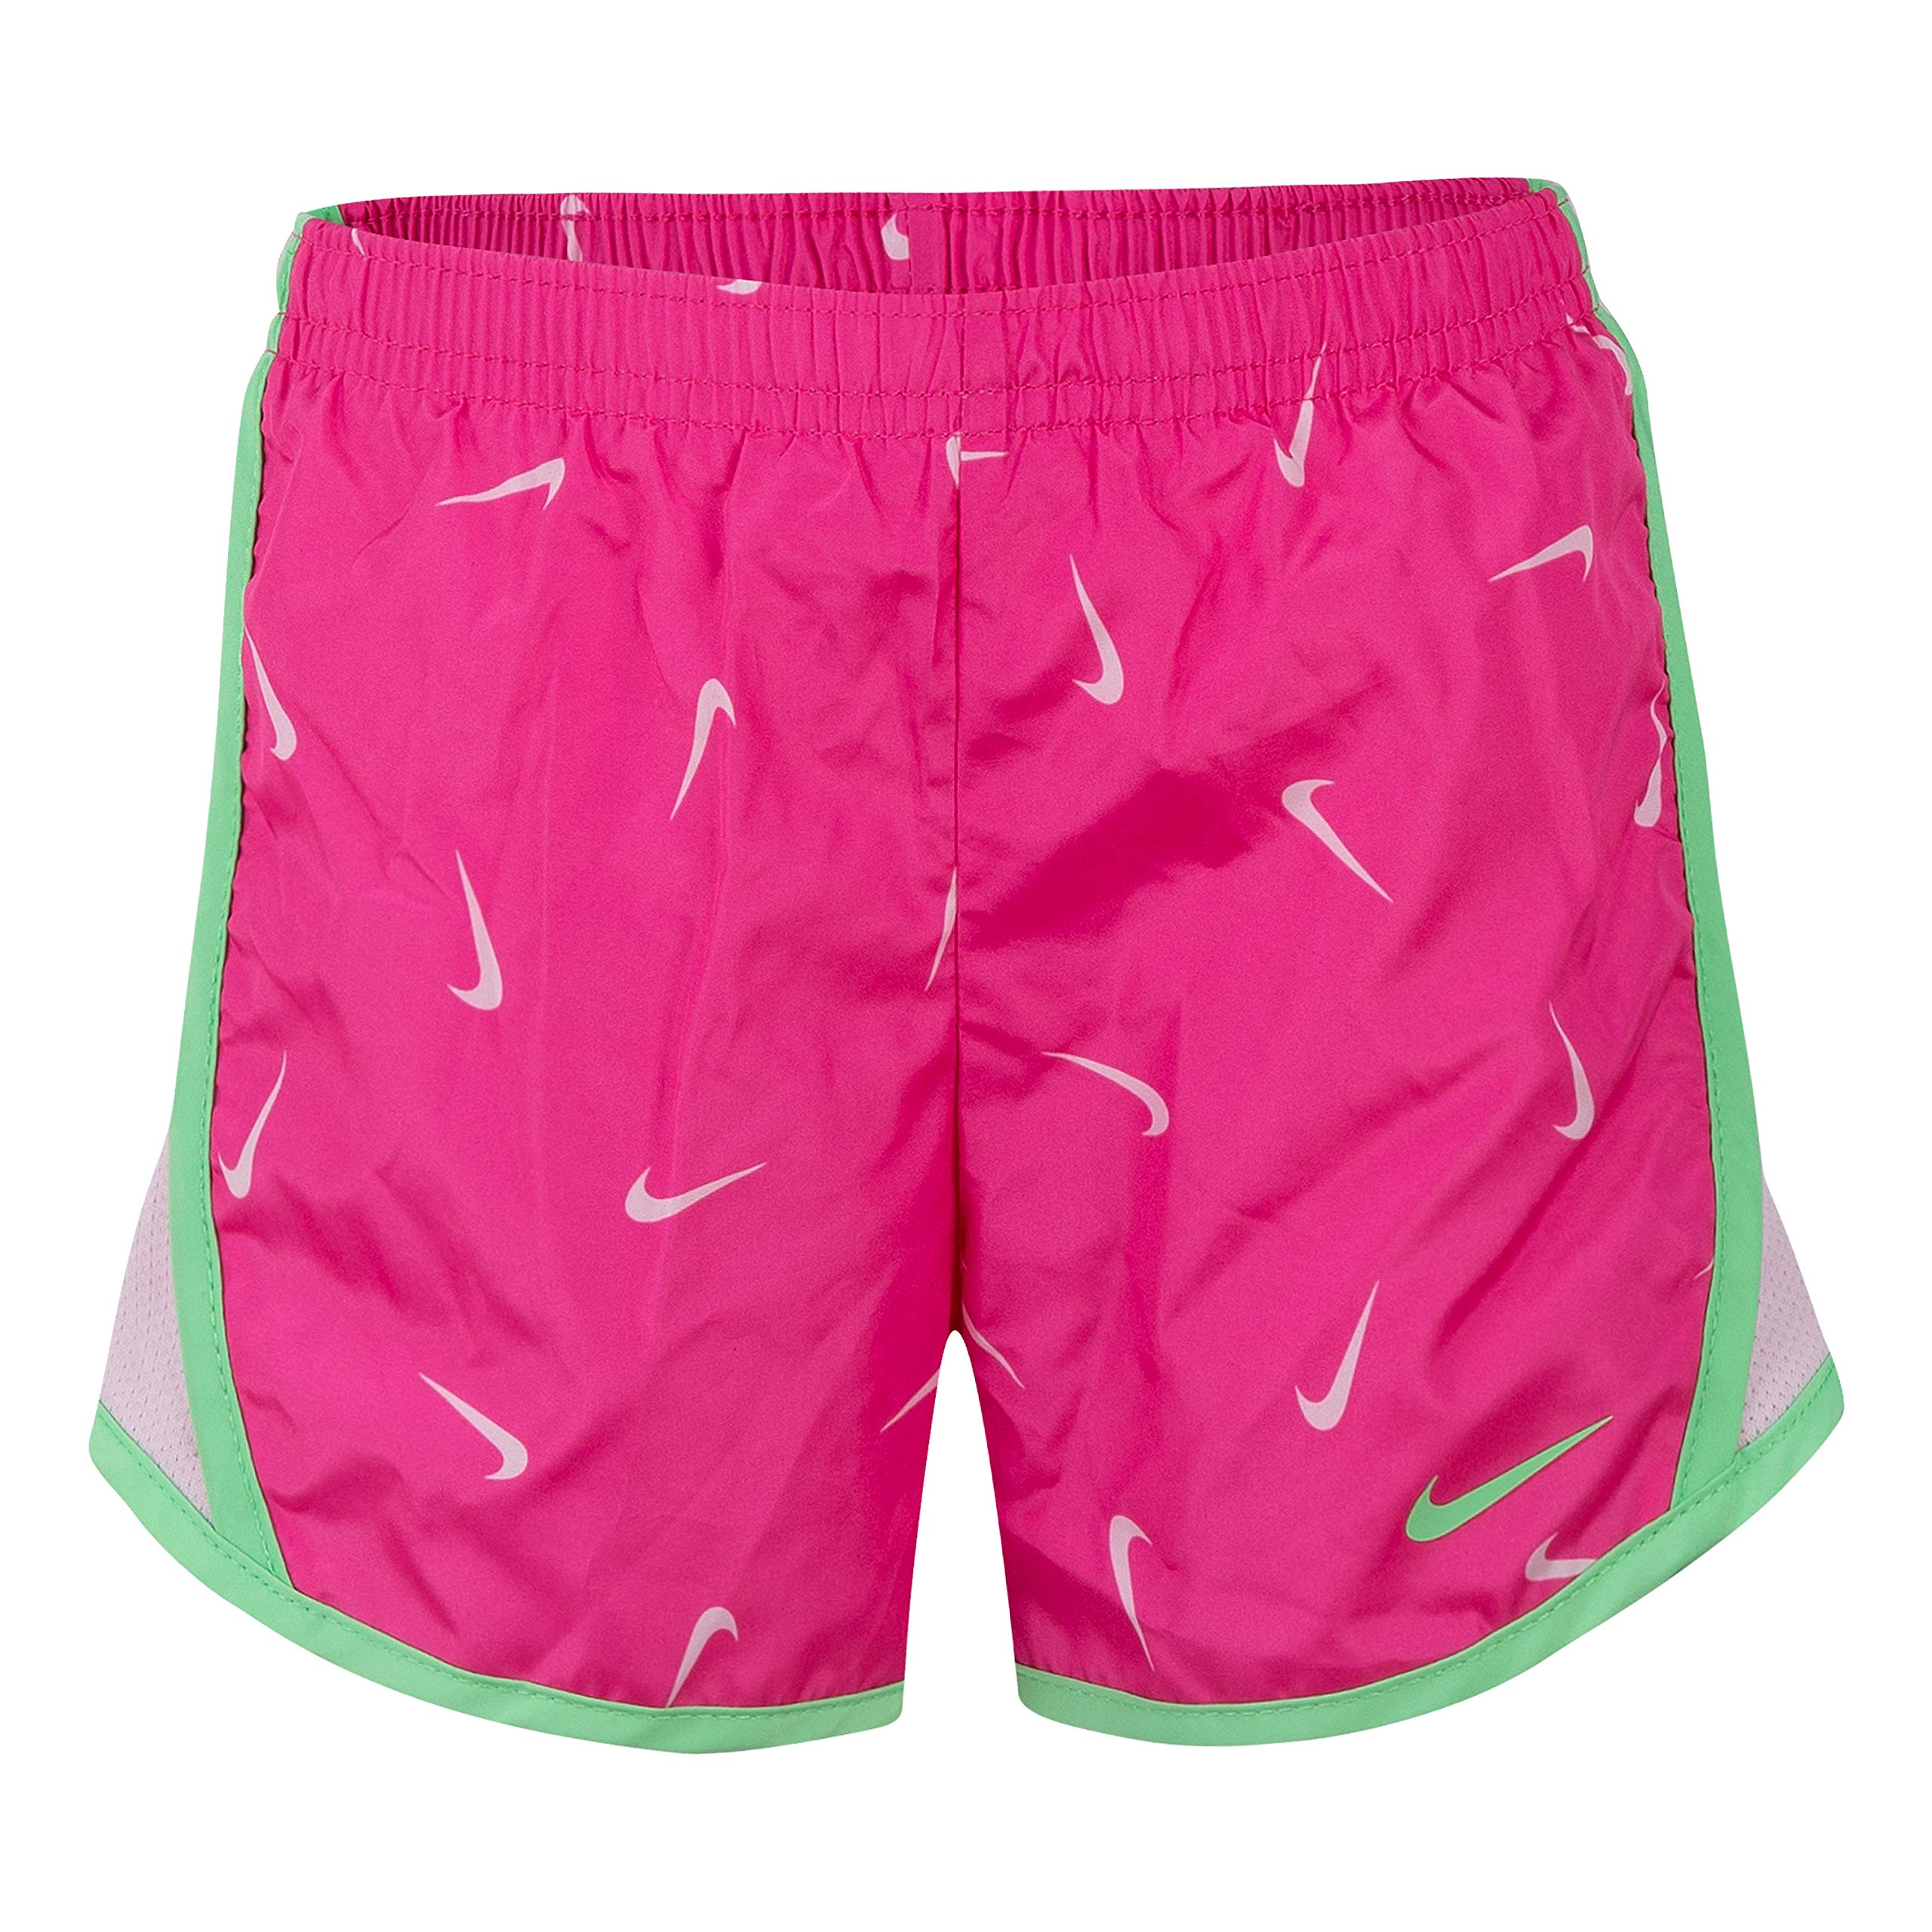 NIKE Children's Apparel Girls' Little Dri-FIT Tempo Shorts, Laser Fuchsia/Green, 4 by NIKE Children's Apparel